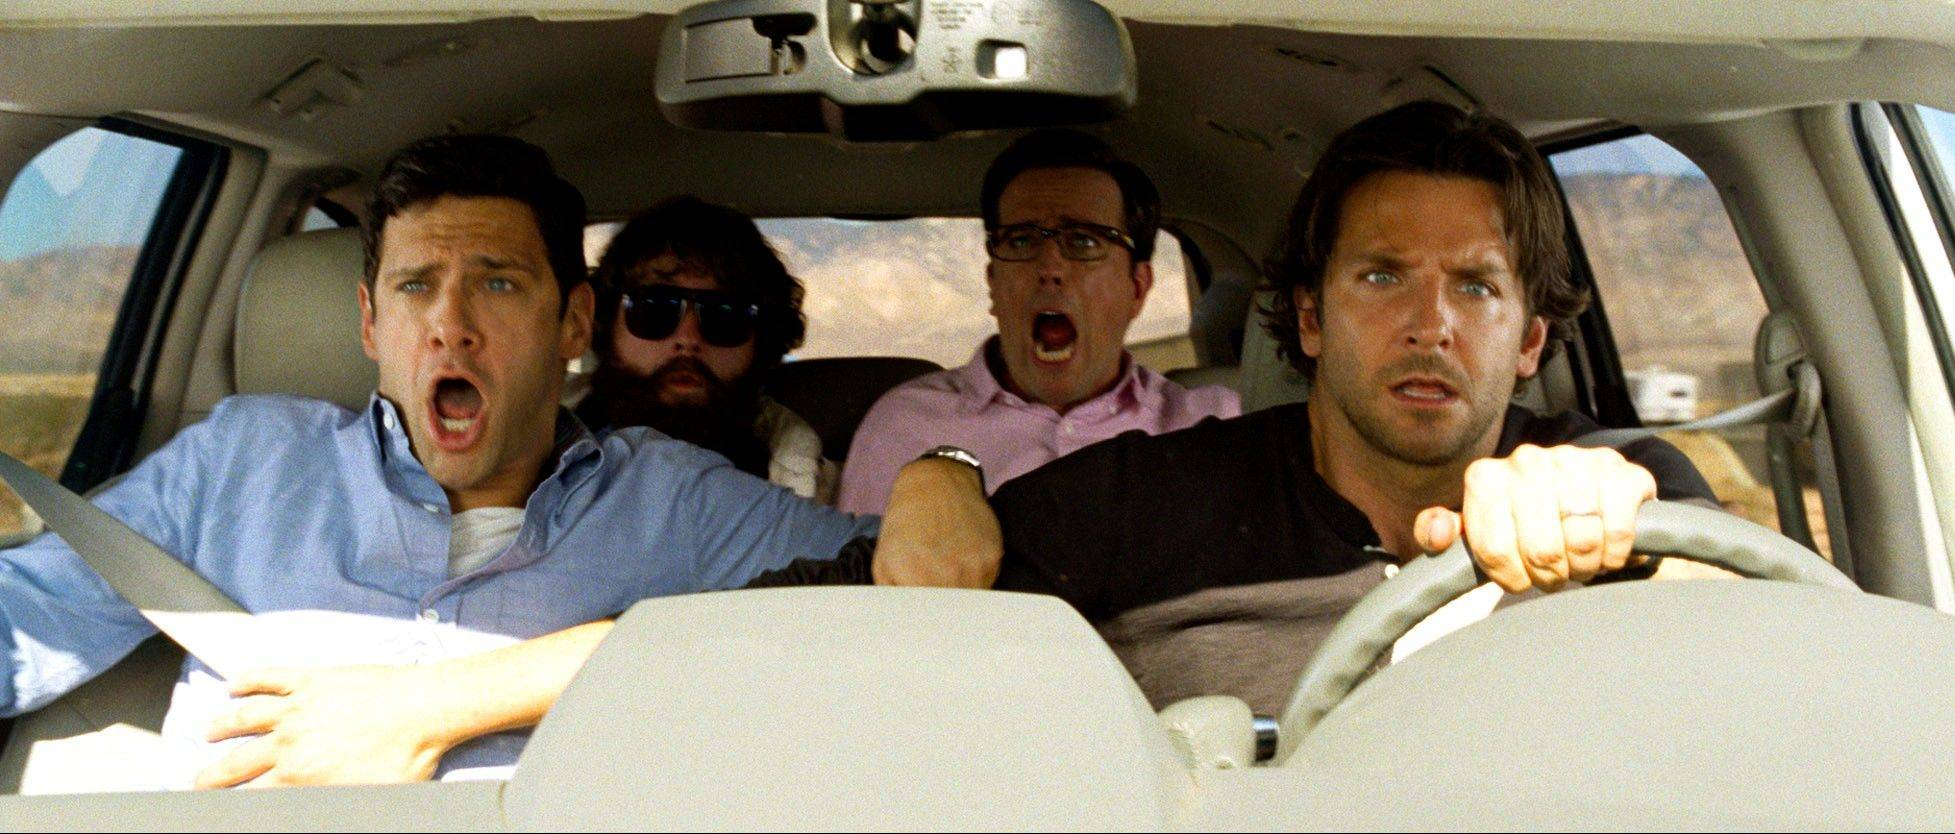 "Doug (Justin Bartha), left, screeches as Alan (Zach Galifianakis), Stu (Ed Helms) and Phil (Bradley Cooper) prepare for a disaster in the comedy ""The Hangover Part III."""